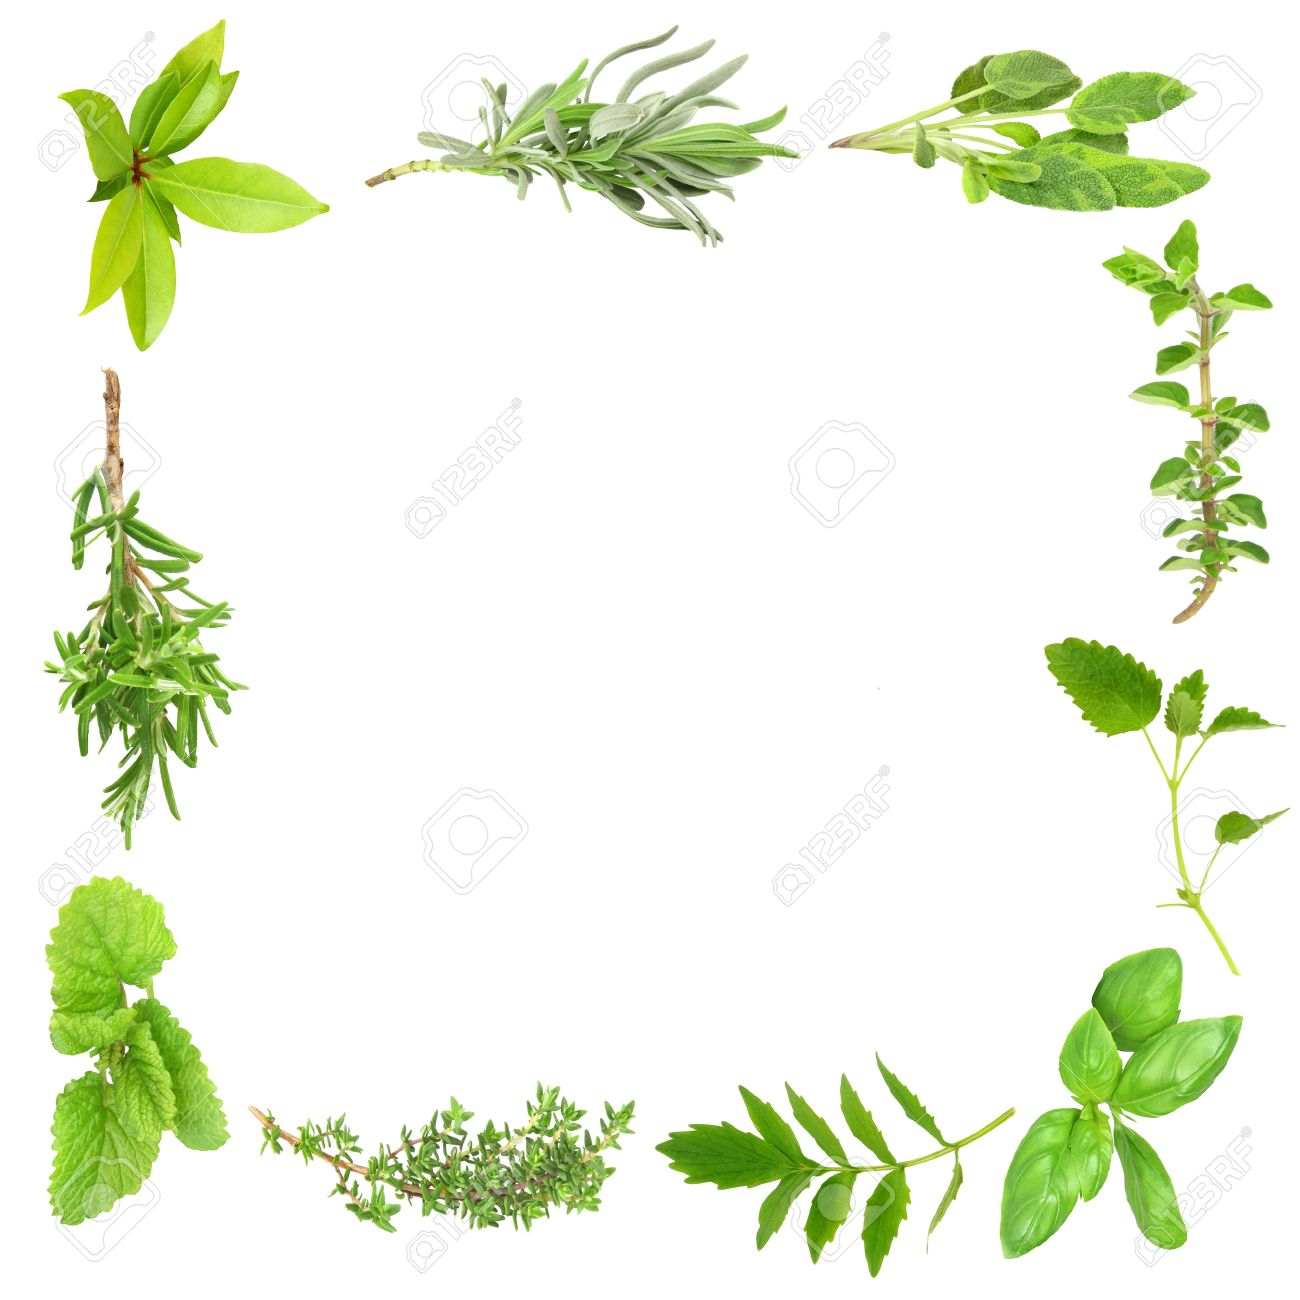 Herb Leaf Border Of Bay Leaves Lavender Sage Valerian Vallium